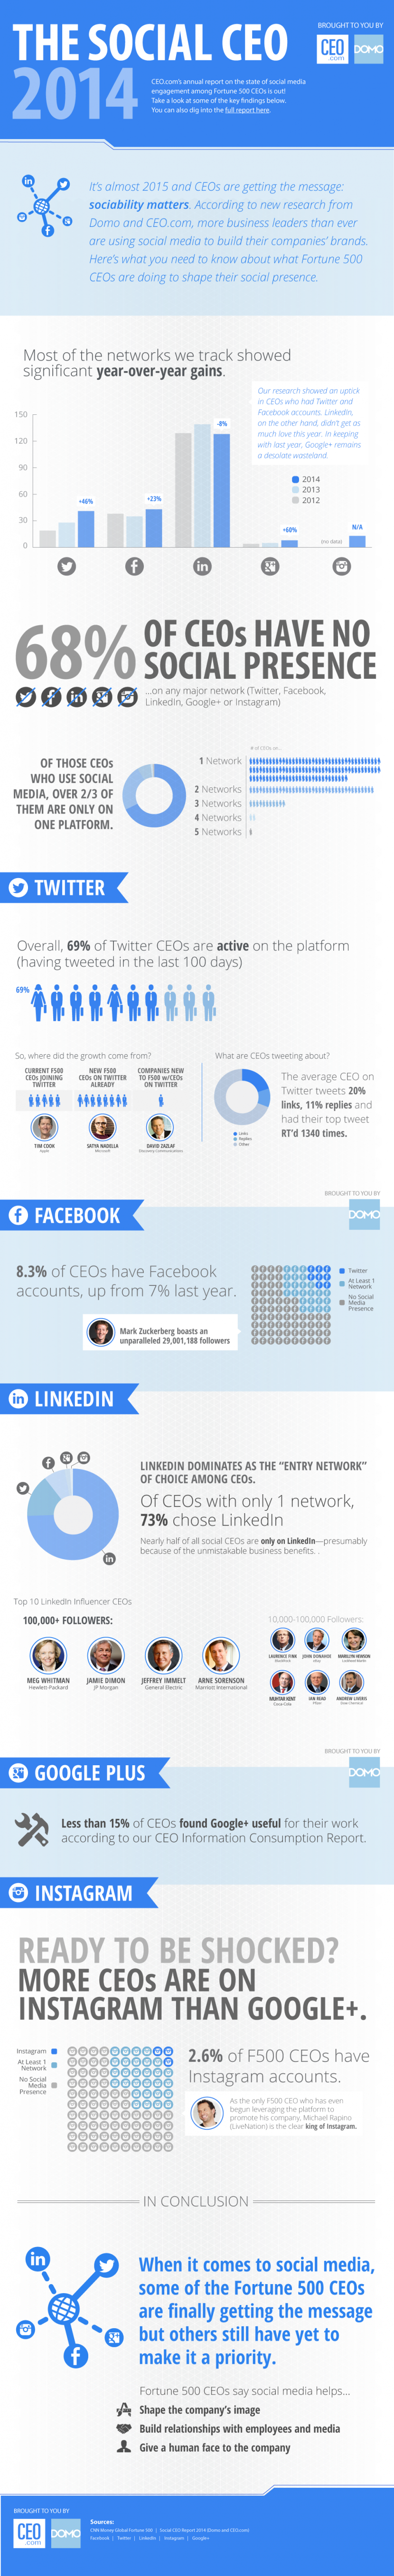 Infographie 165 - Social CEO 2014